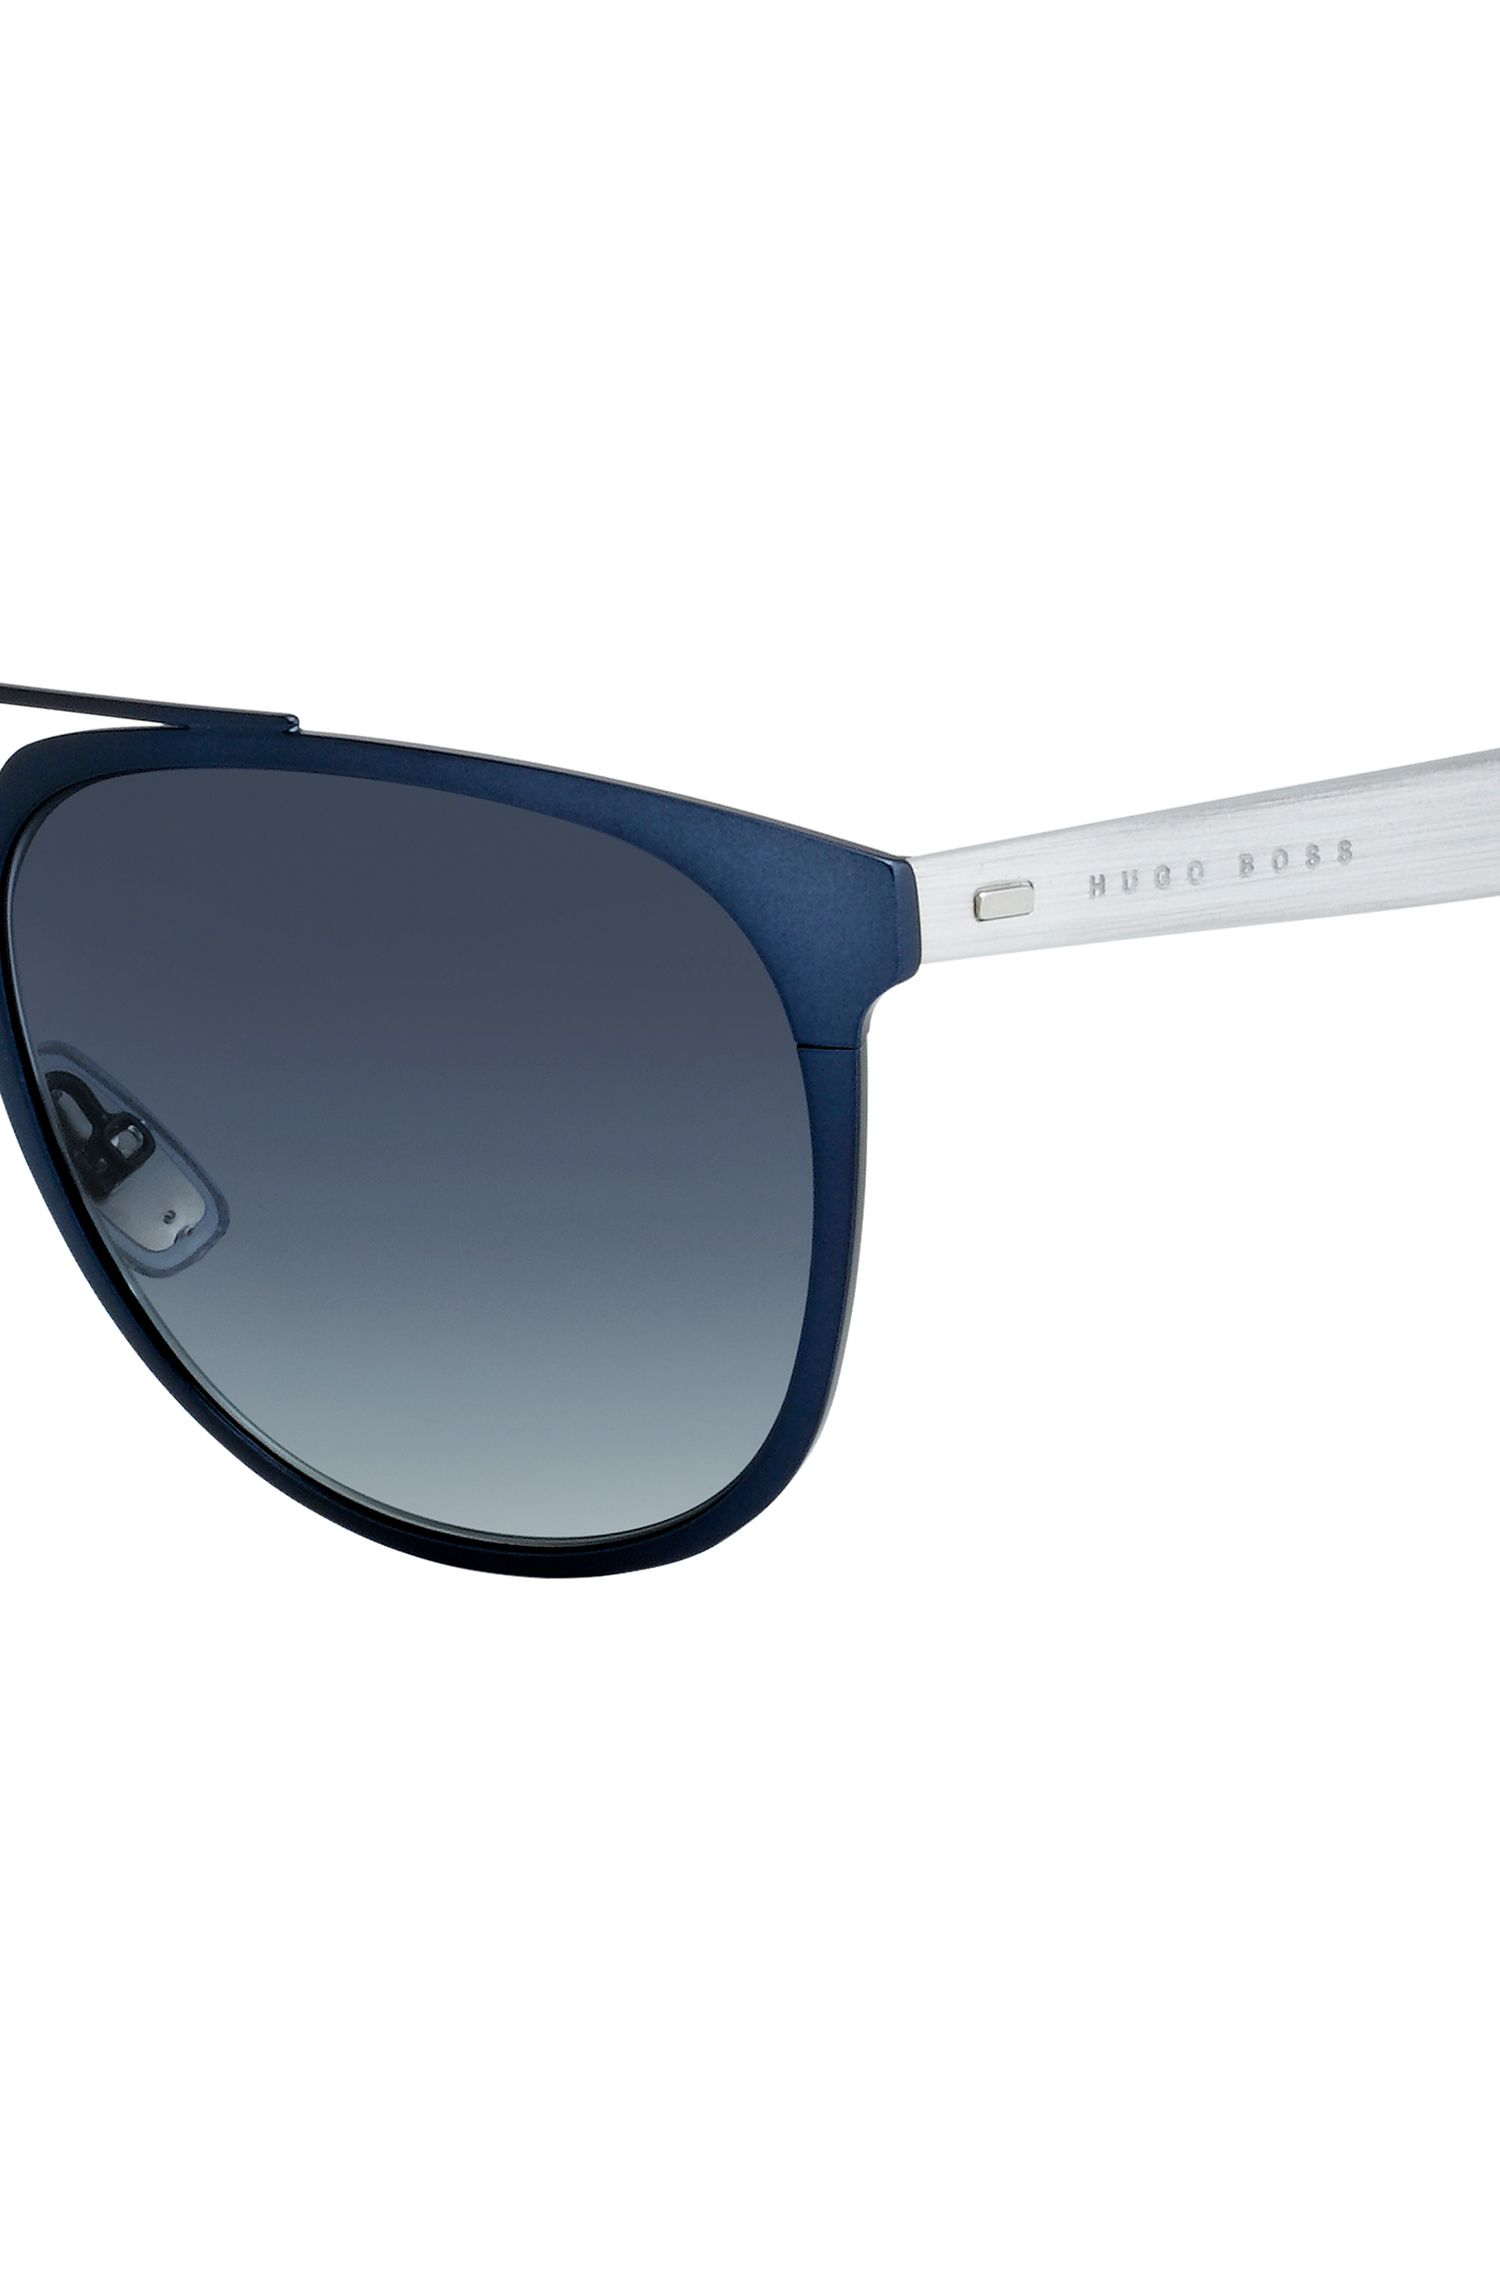 Dark Grey Gradient Round Metal Sunglasses | BOSS 0882S